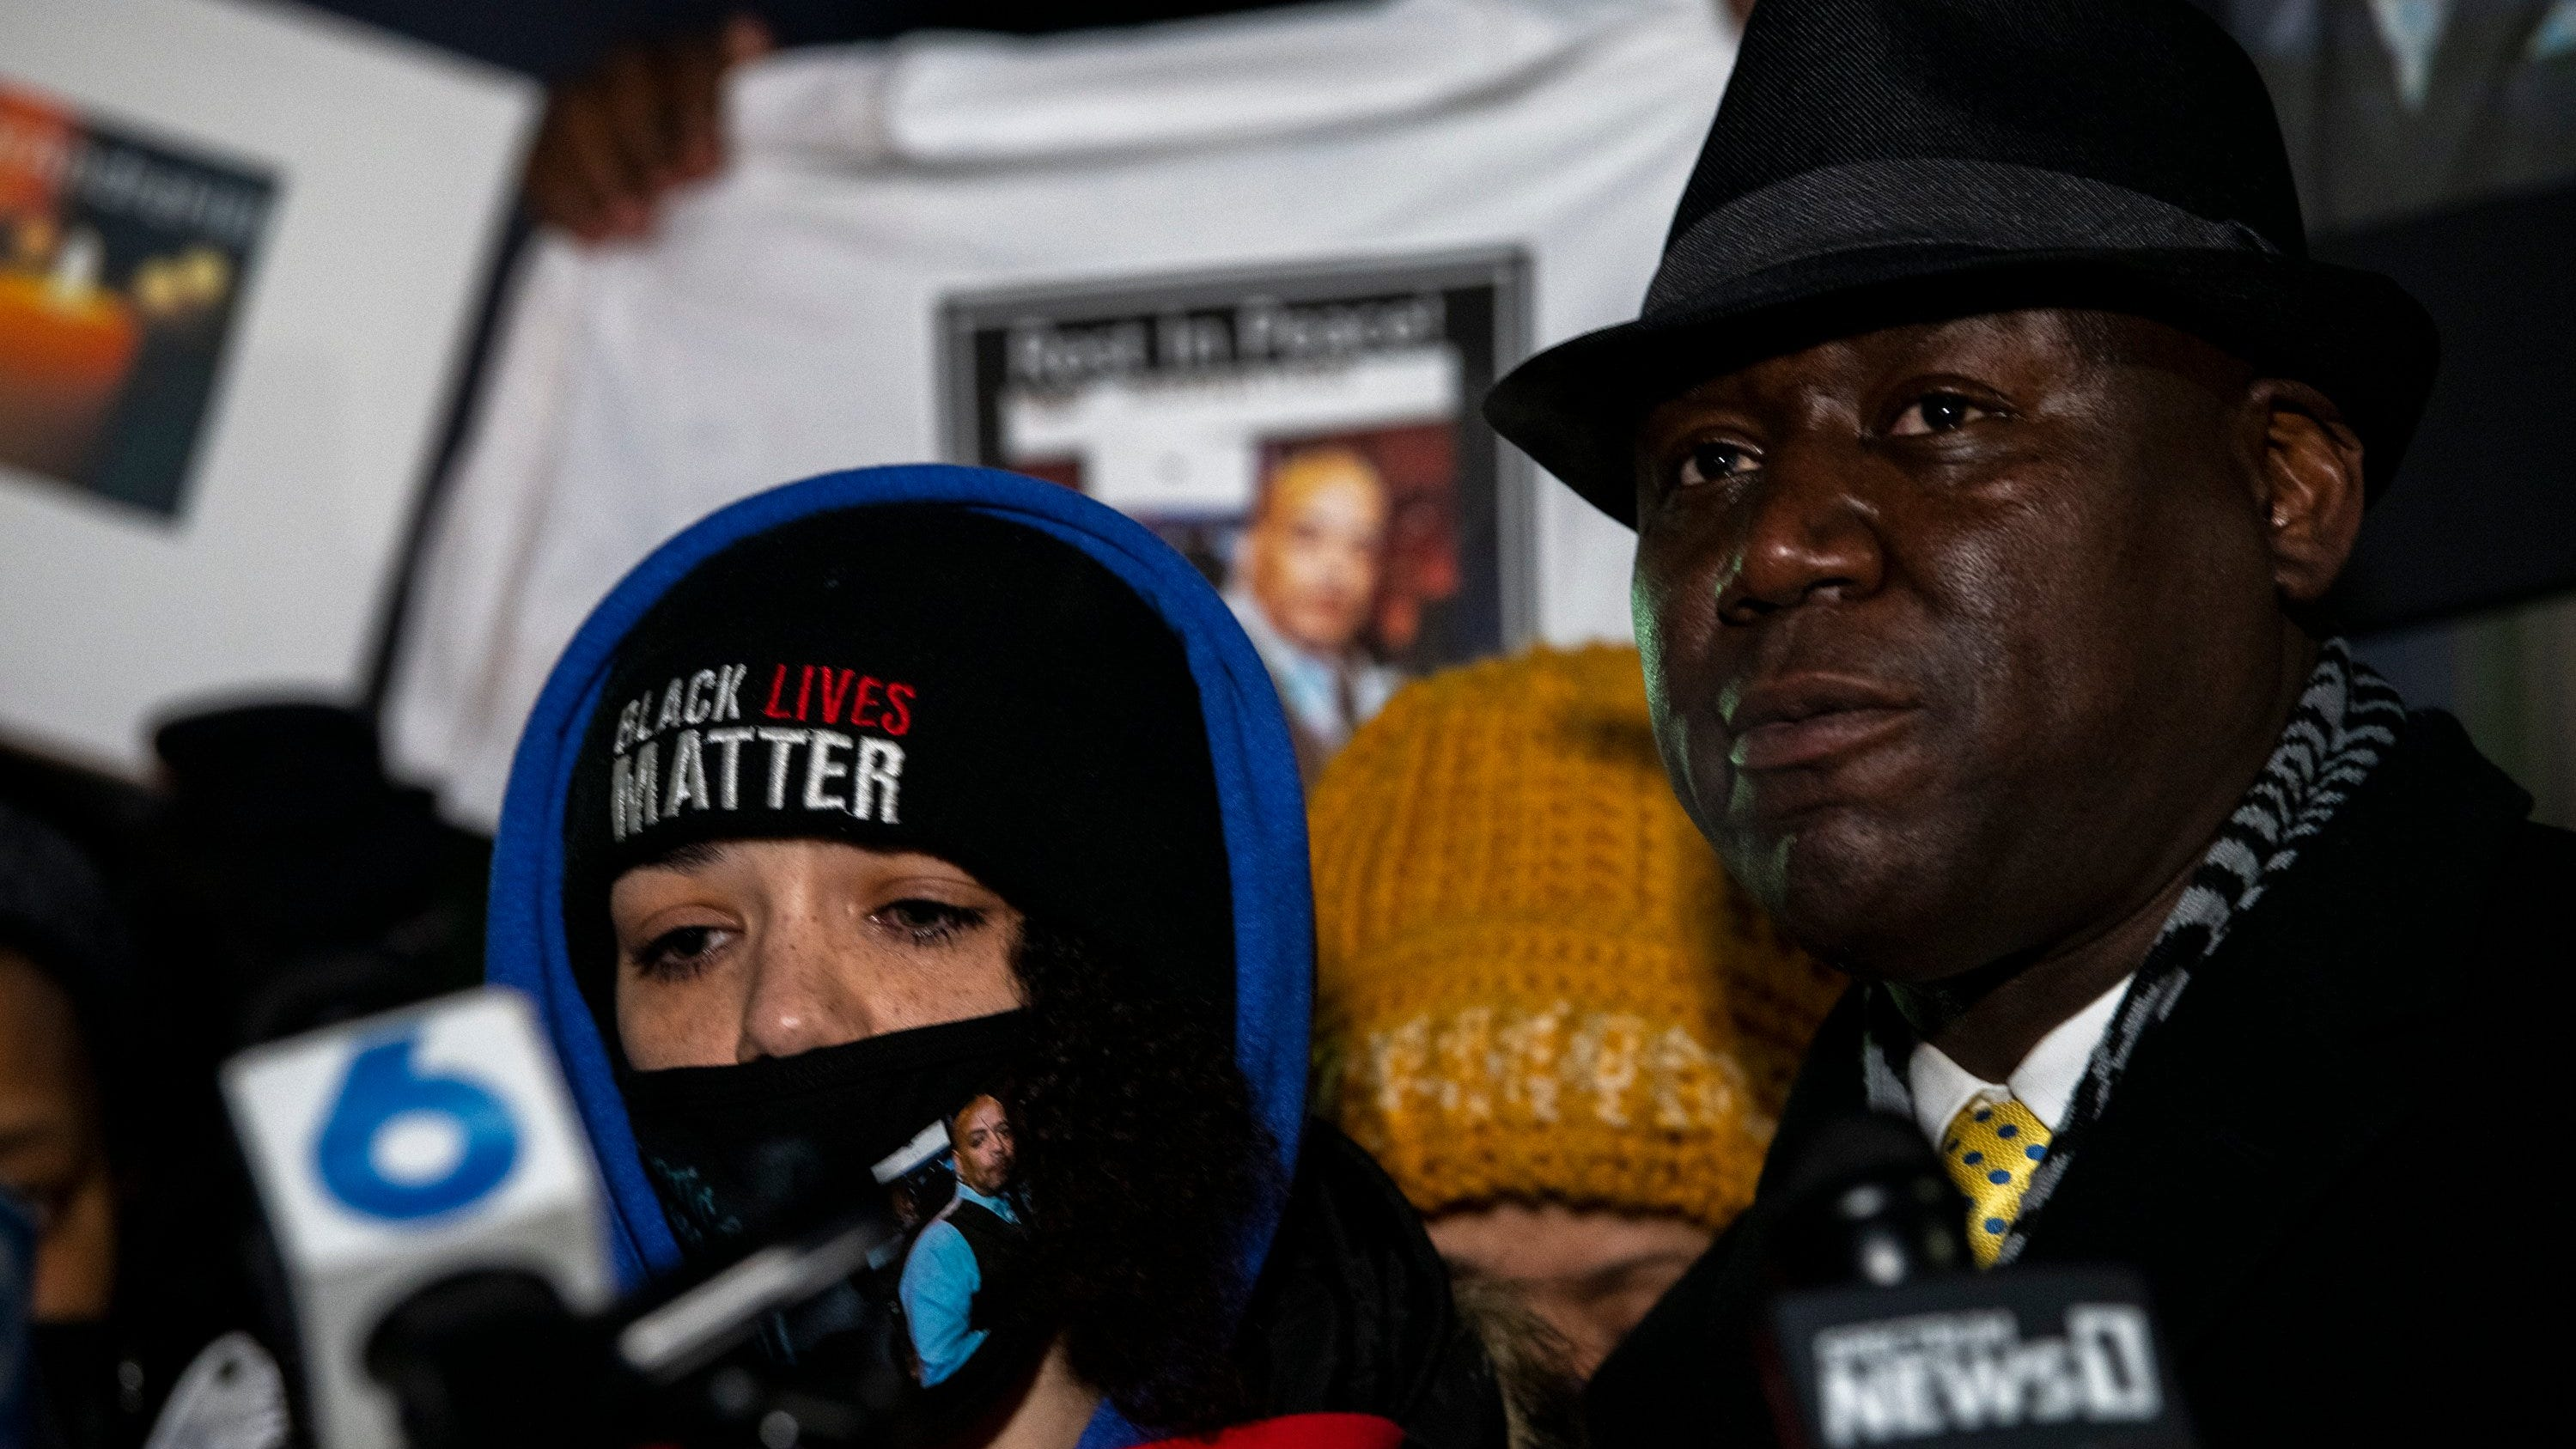 Karissa Hill, daughter of Andre' Hill, stands beside Attorney Ben Crump during a vigil being held for her father at Brentnell Community Recreation Center on Dec. 26, 2020.